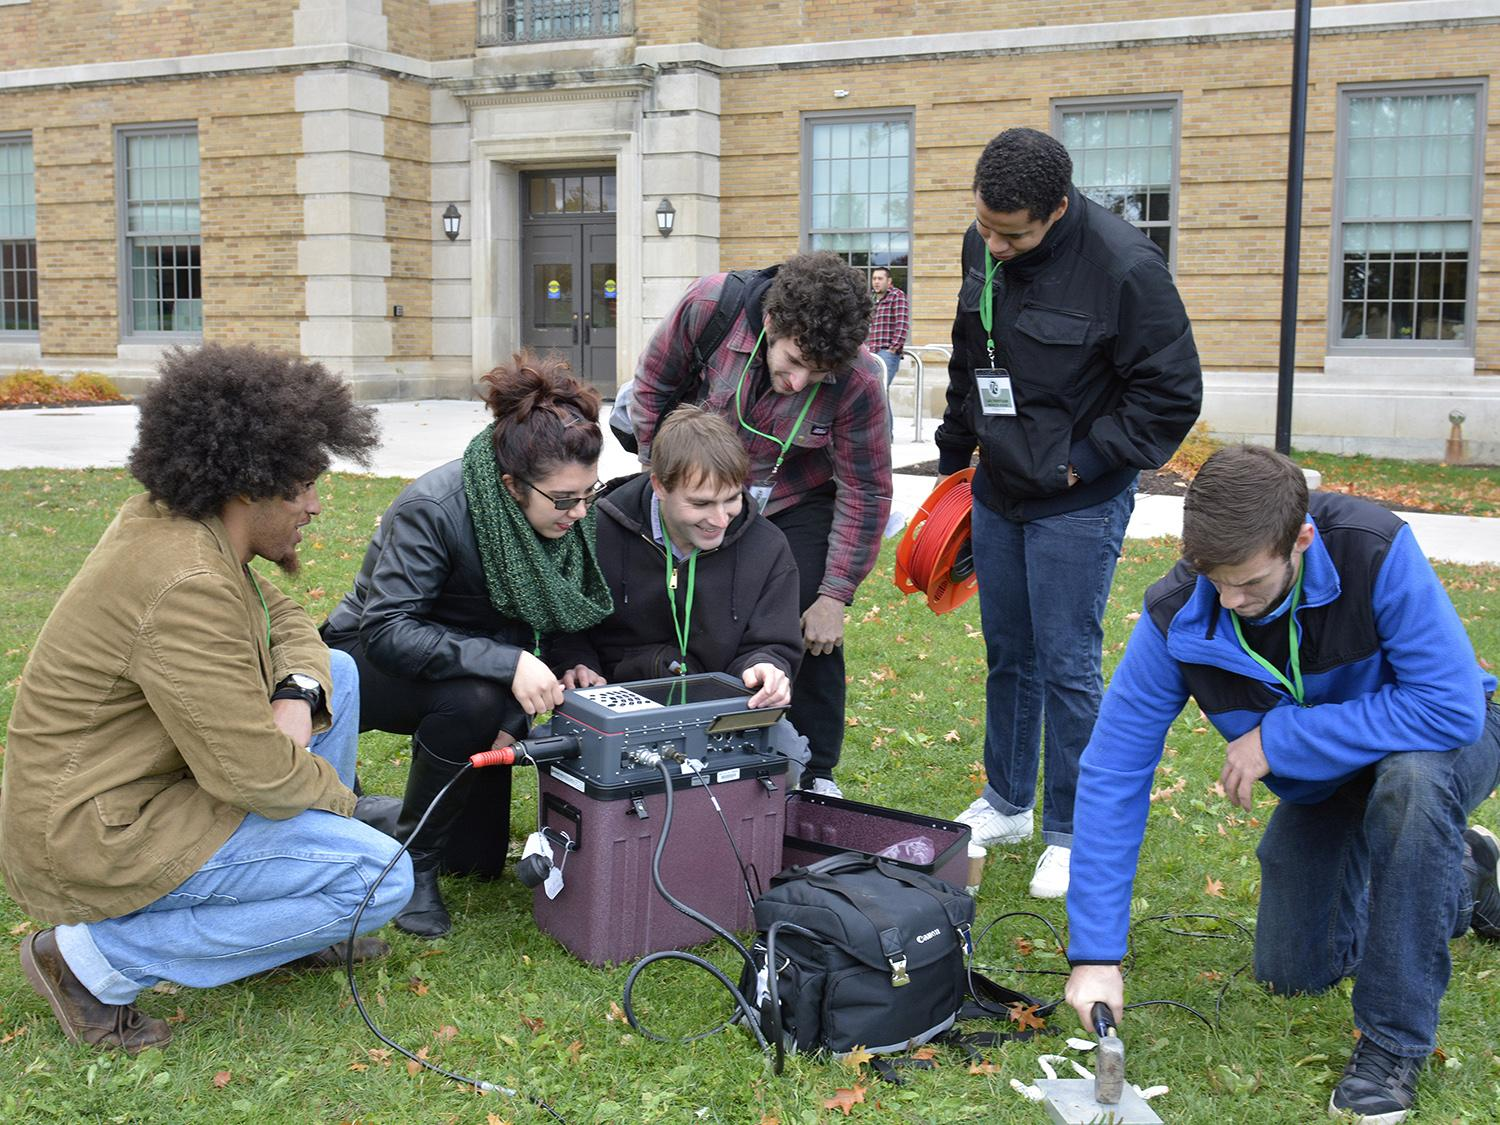 Students unpack a seismograph system